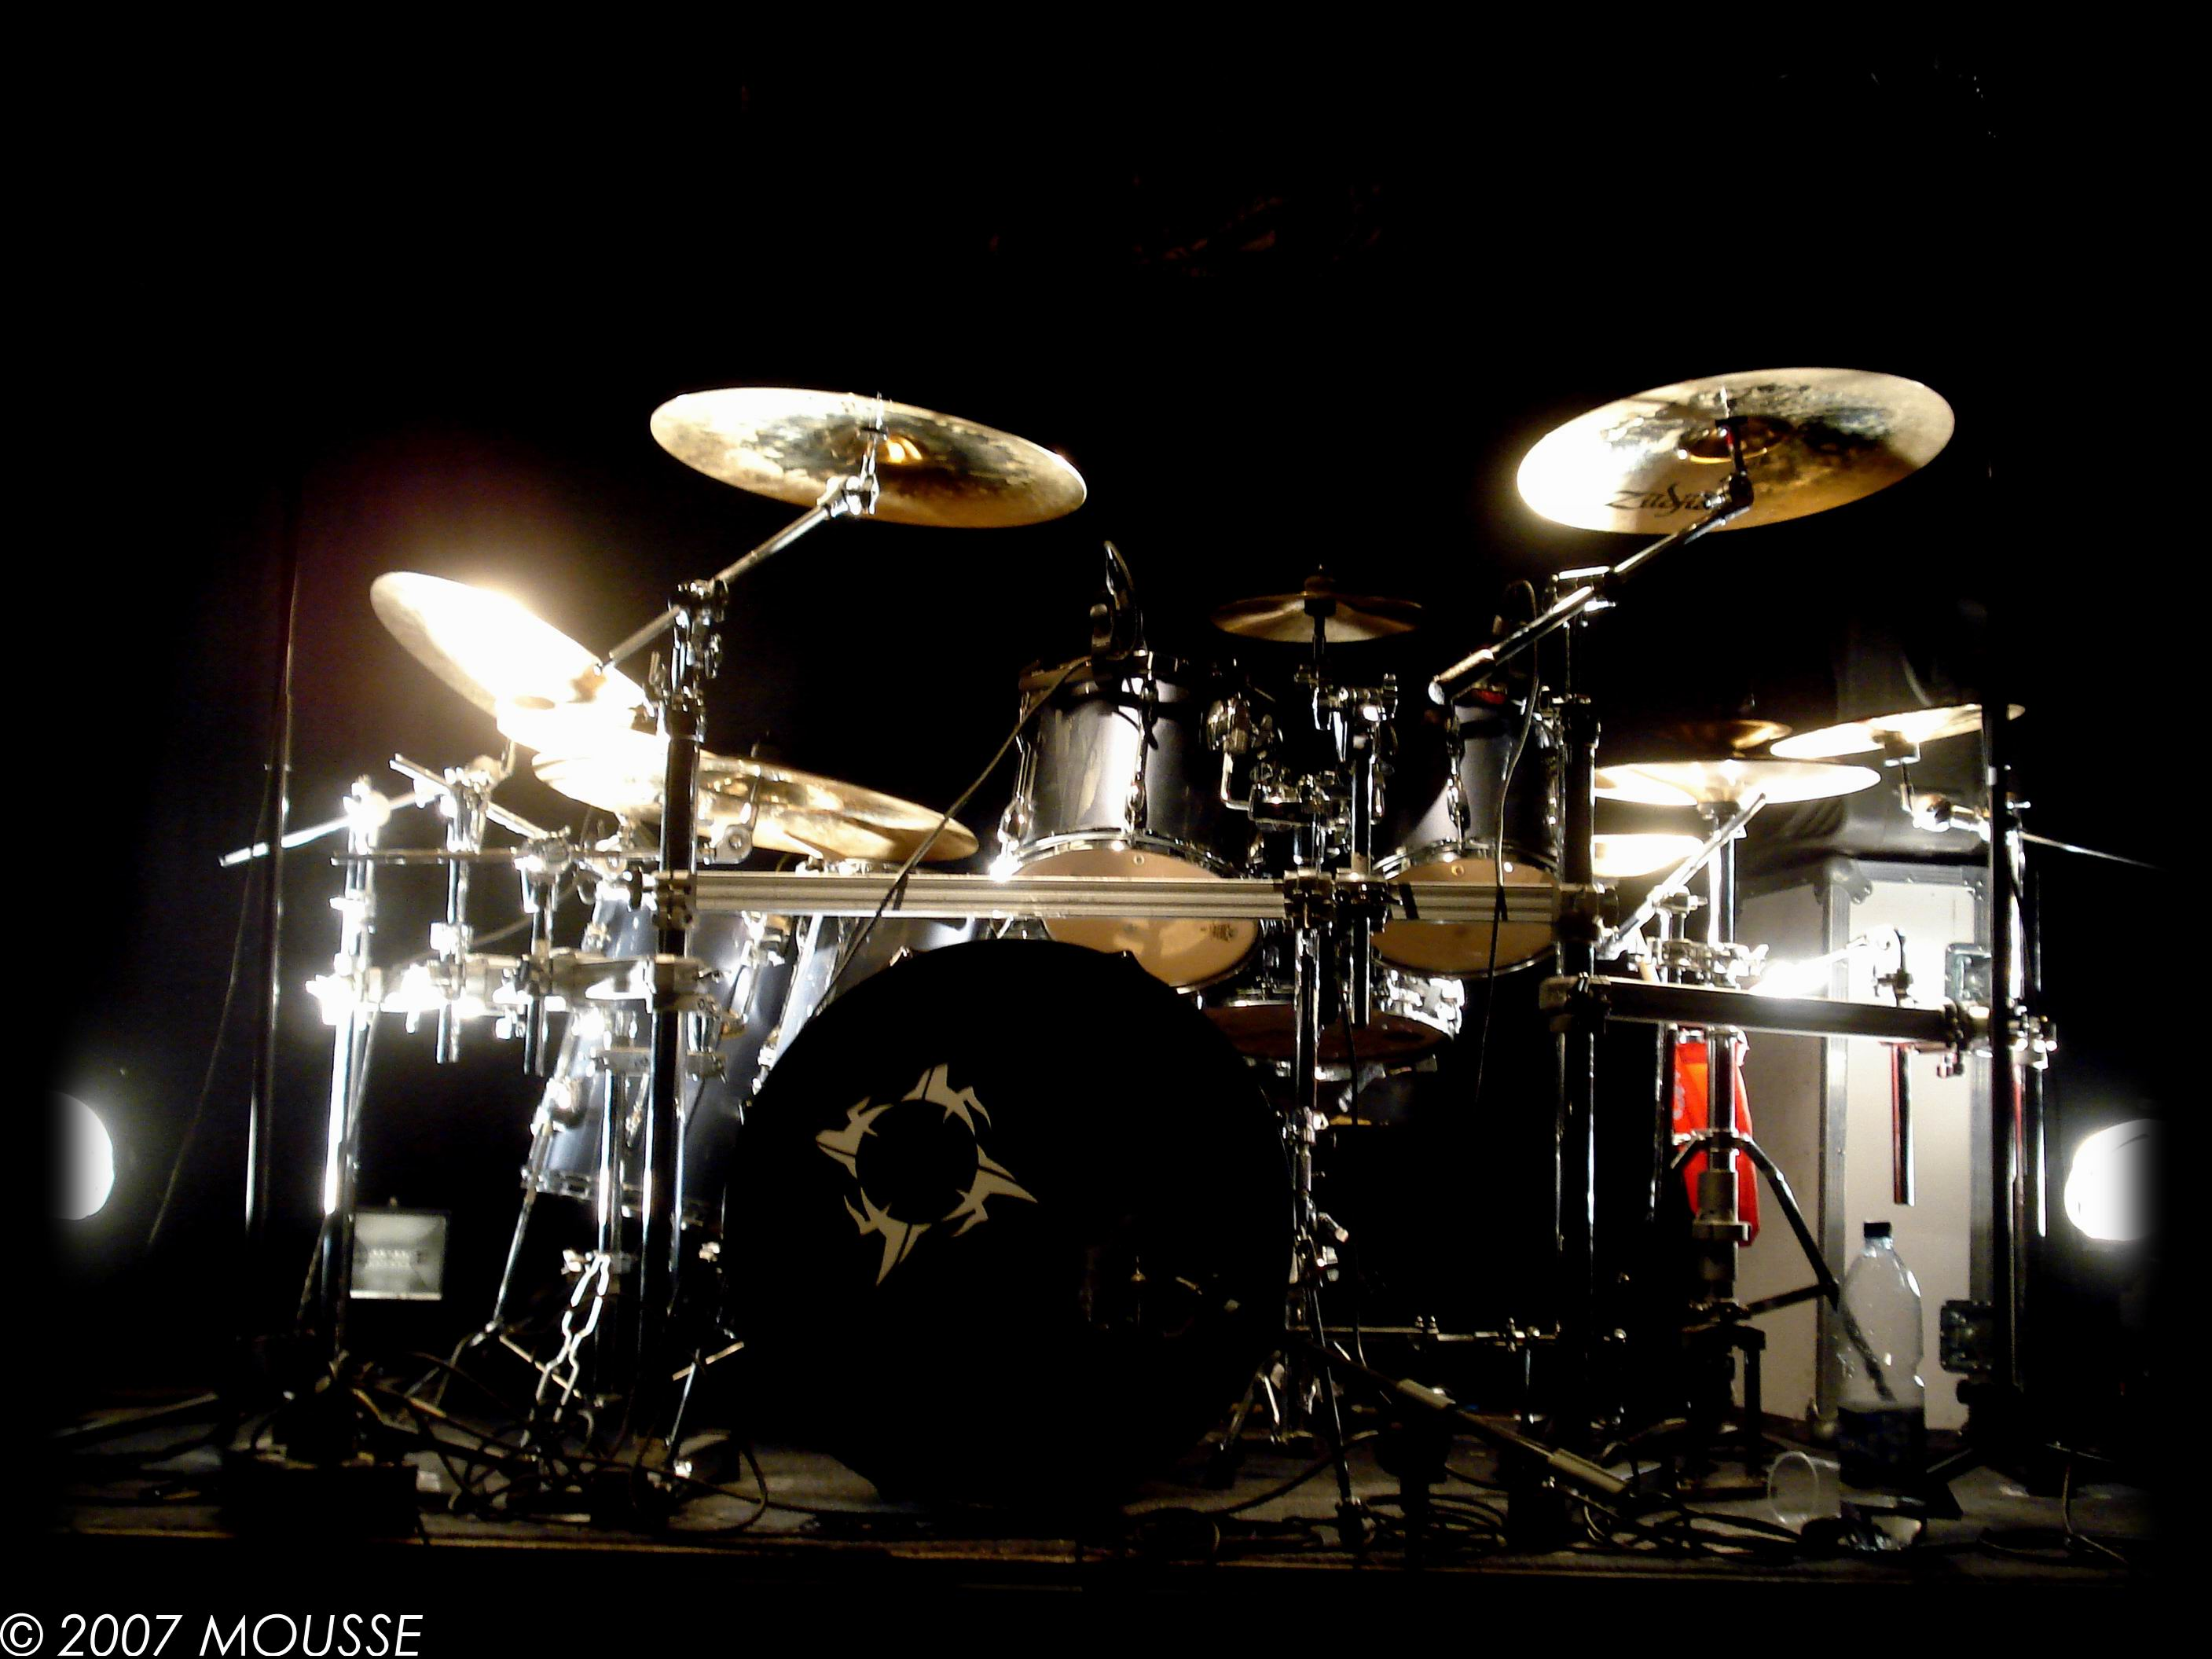 Drums Wallpapers: Drum Set Wallpapers Free